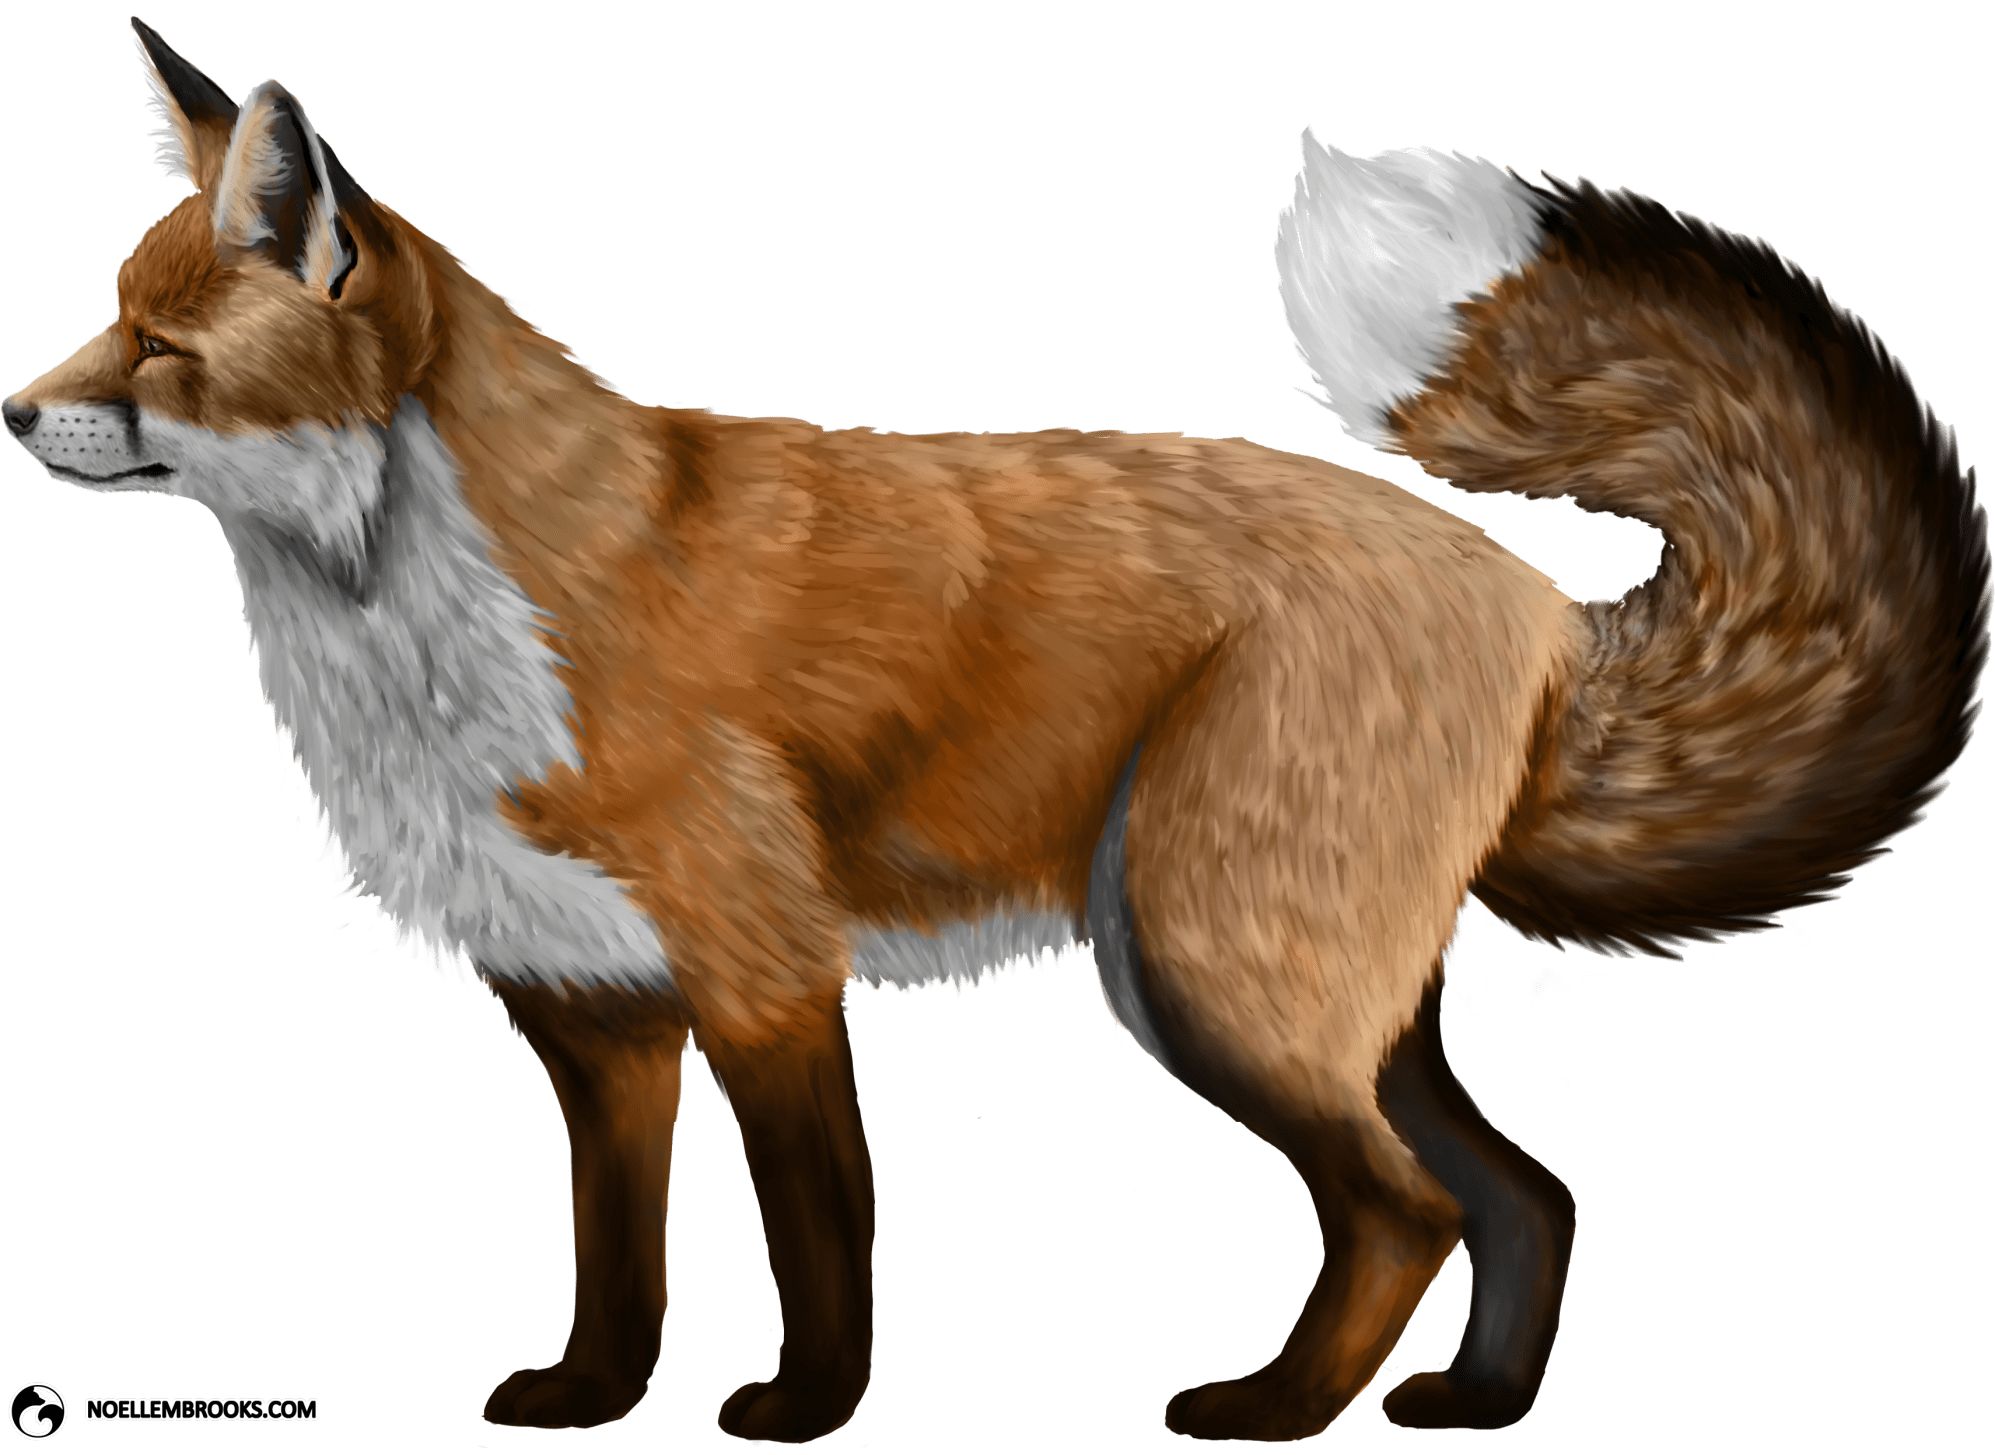 Most Desired Pet Fox Based on Most Frequent Participant Response to Individual Traits